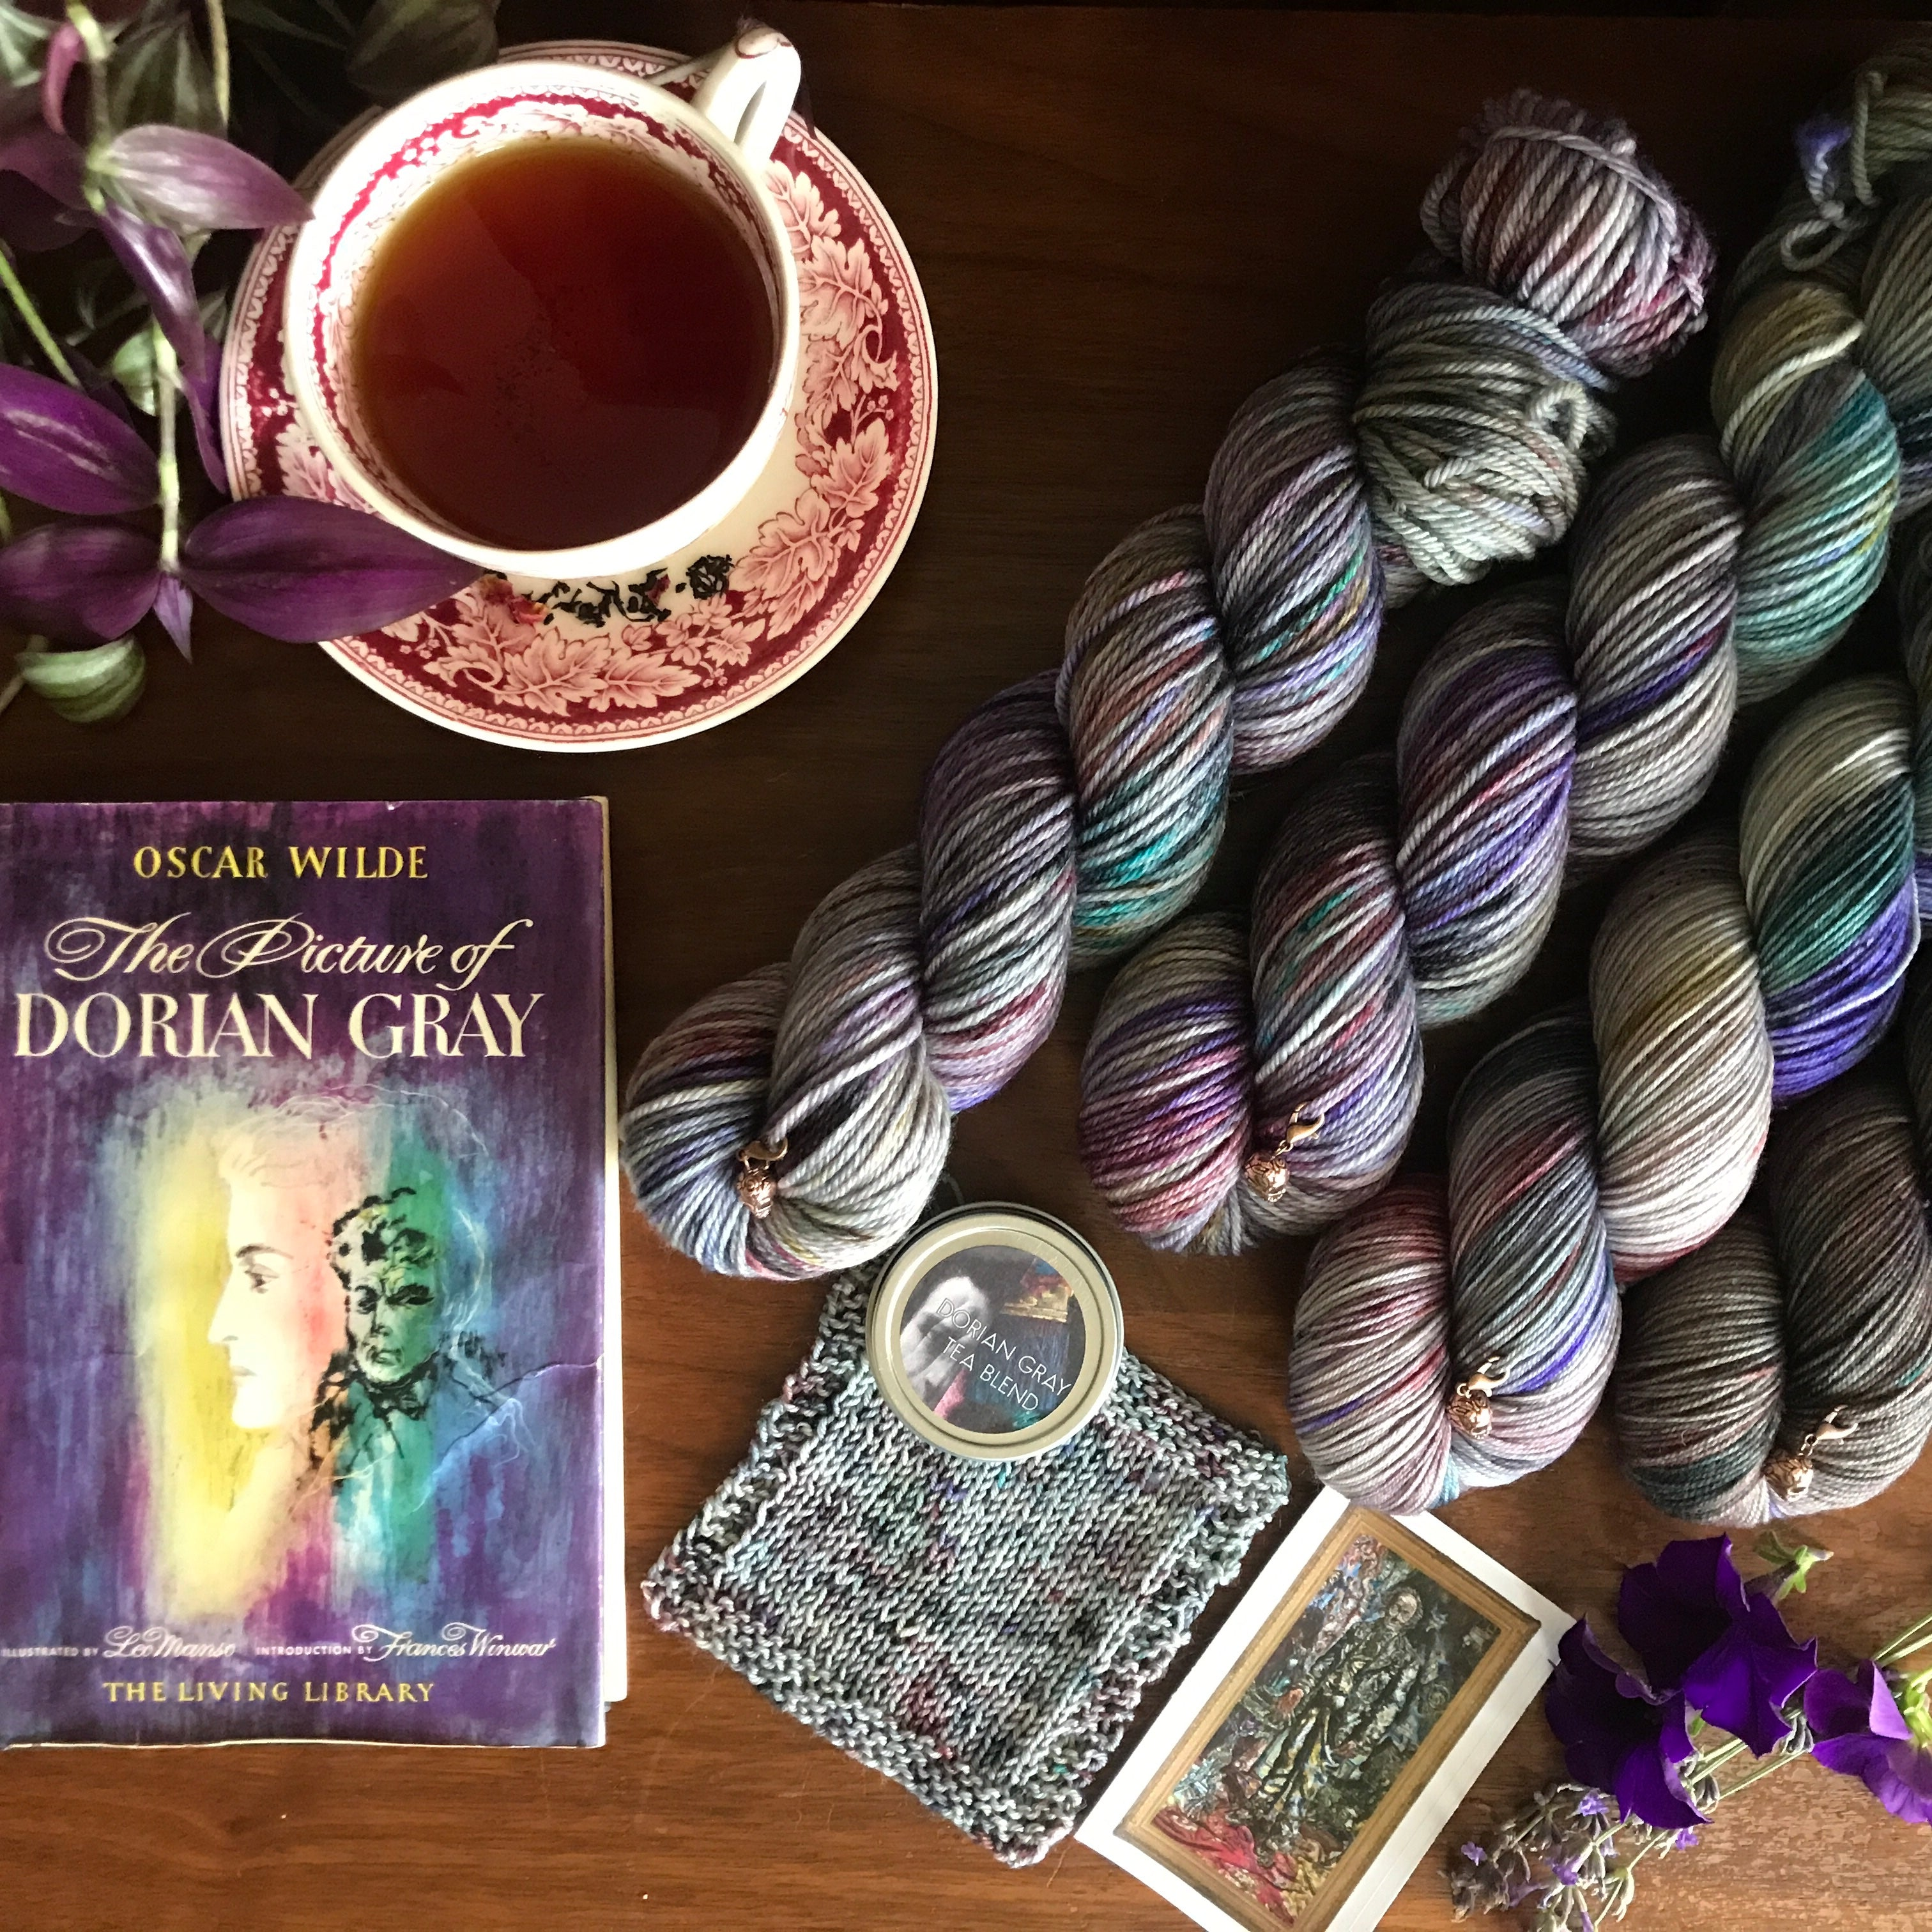 Yarn club inspired by The Picture of Dorian Gray features a floral-gray hand dyed yarn, rose petal infused tea, and skull progress keeper.